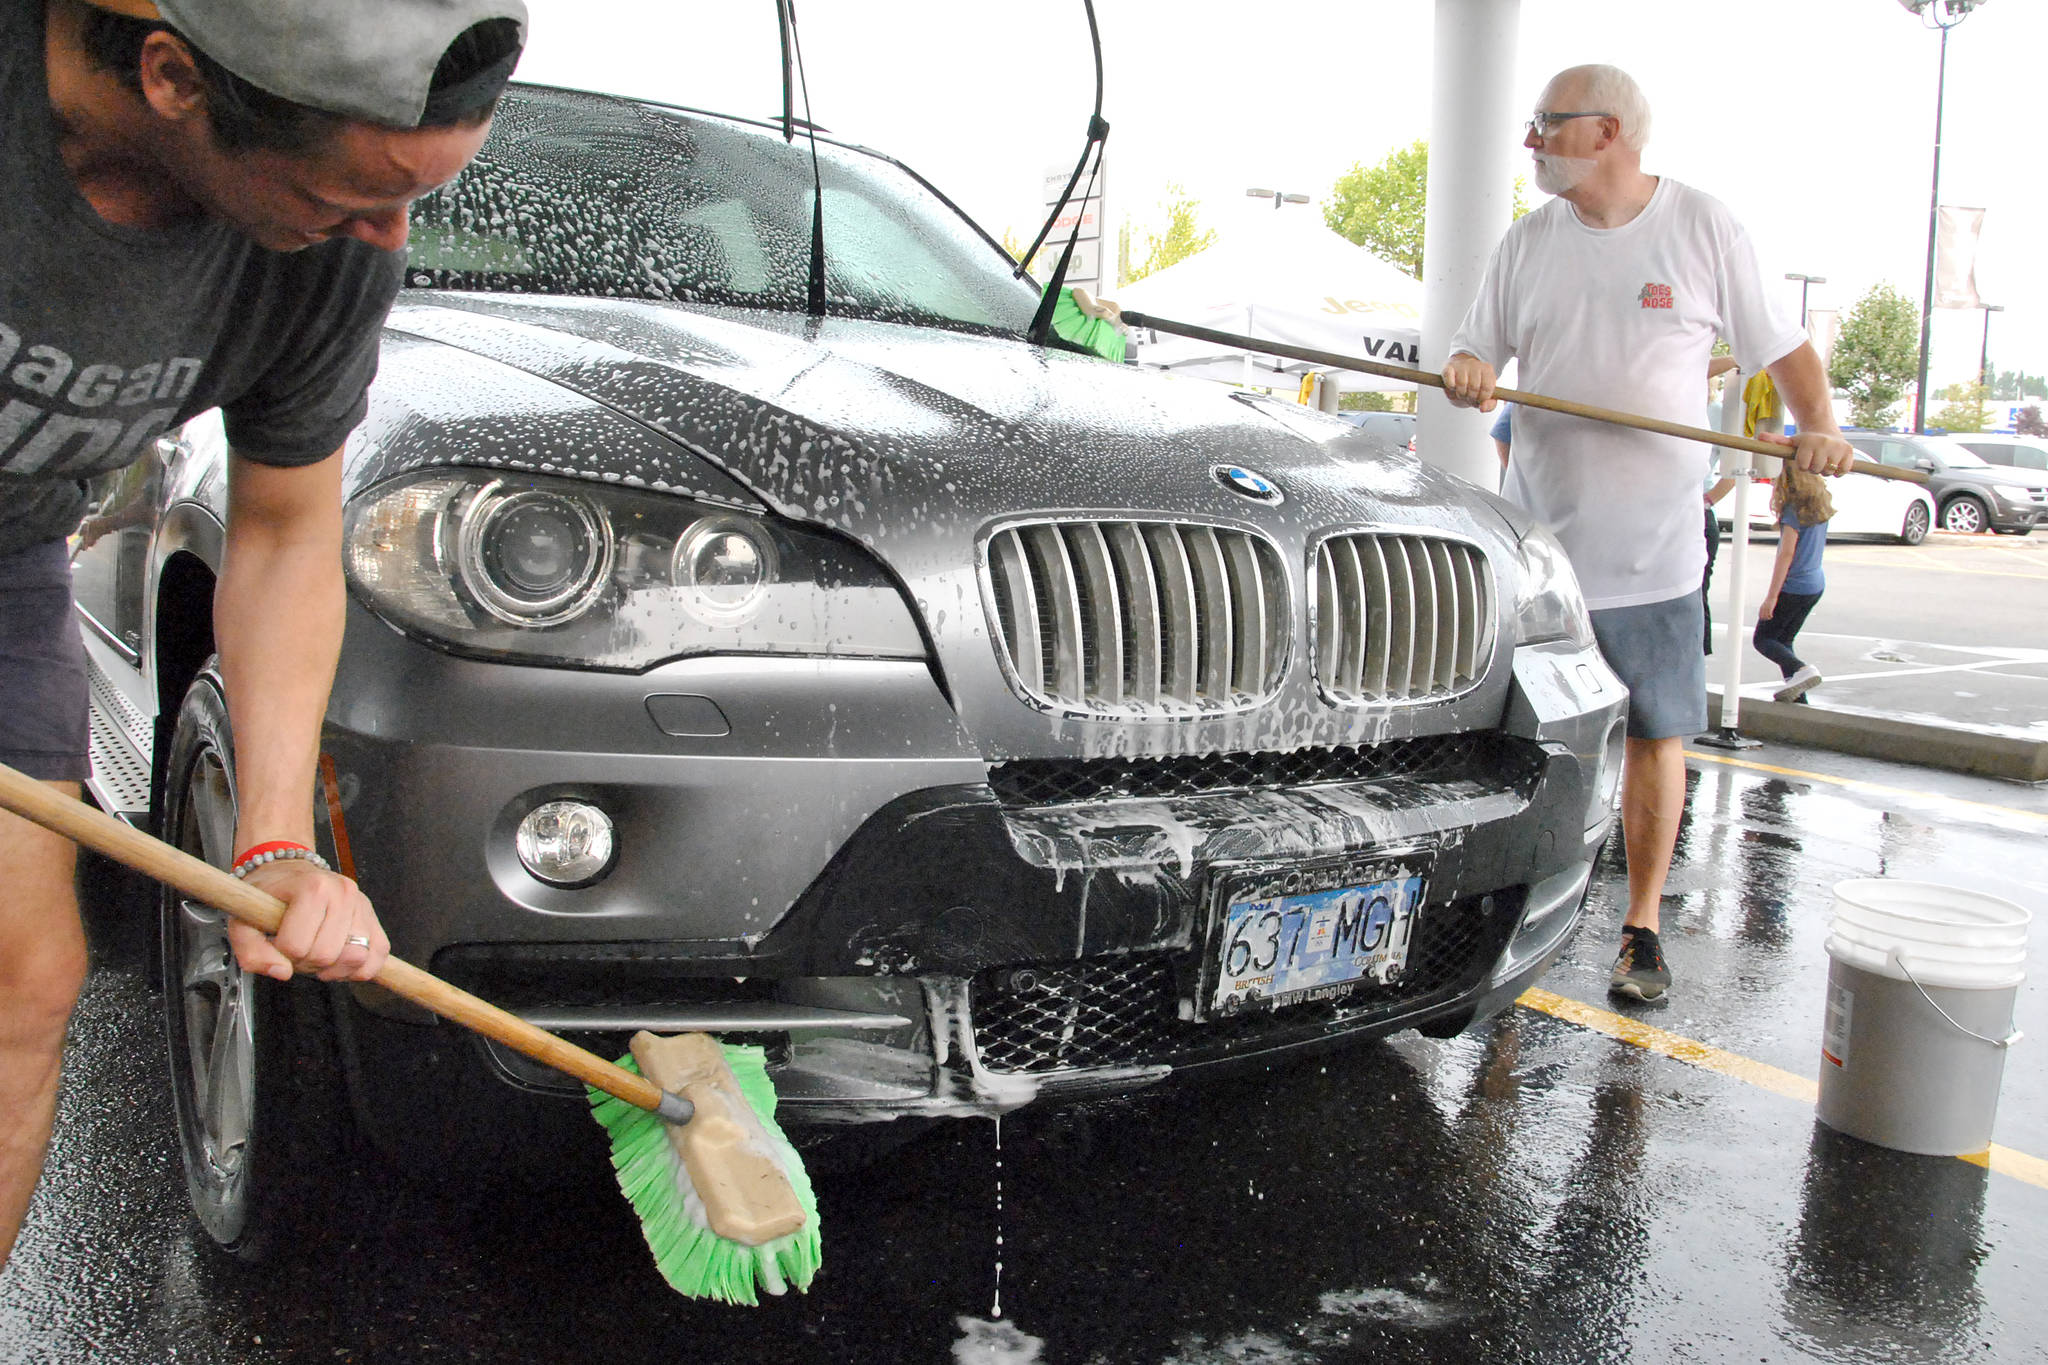 Volunteers scrubbed cars at last year's charity car wash for the Vancouver Cancer Drivers Society. The next car wash is coming up later this month. (Langley Advance Times files)